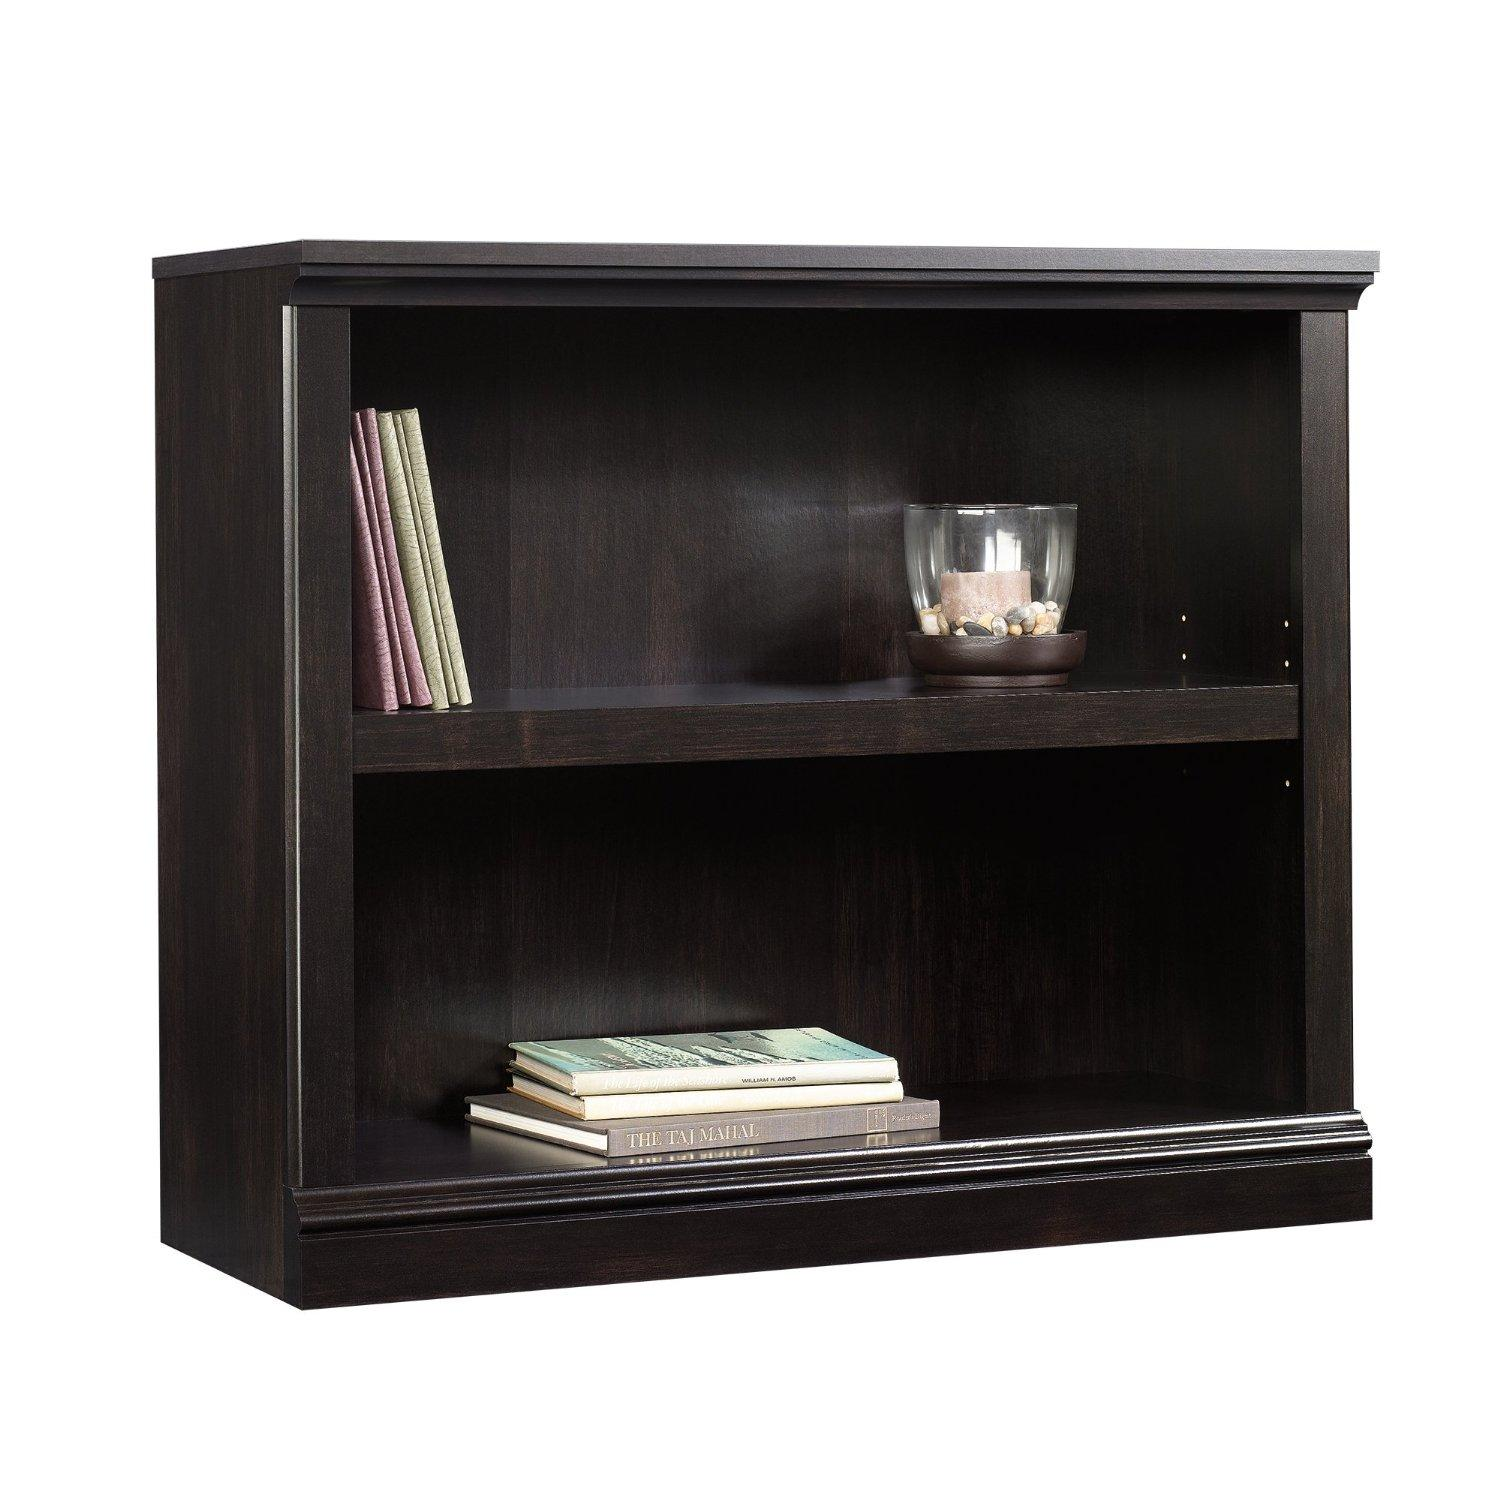 Sauder 2-Shelf Bookcase Estate, Black